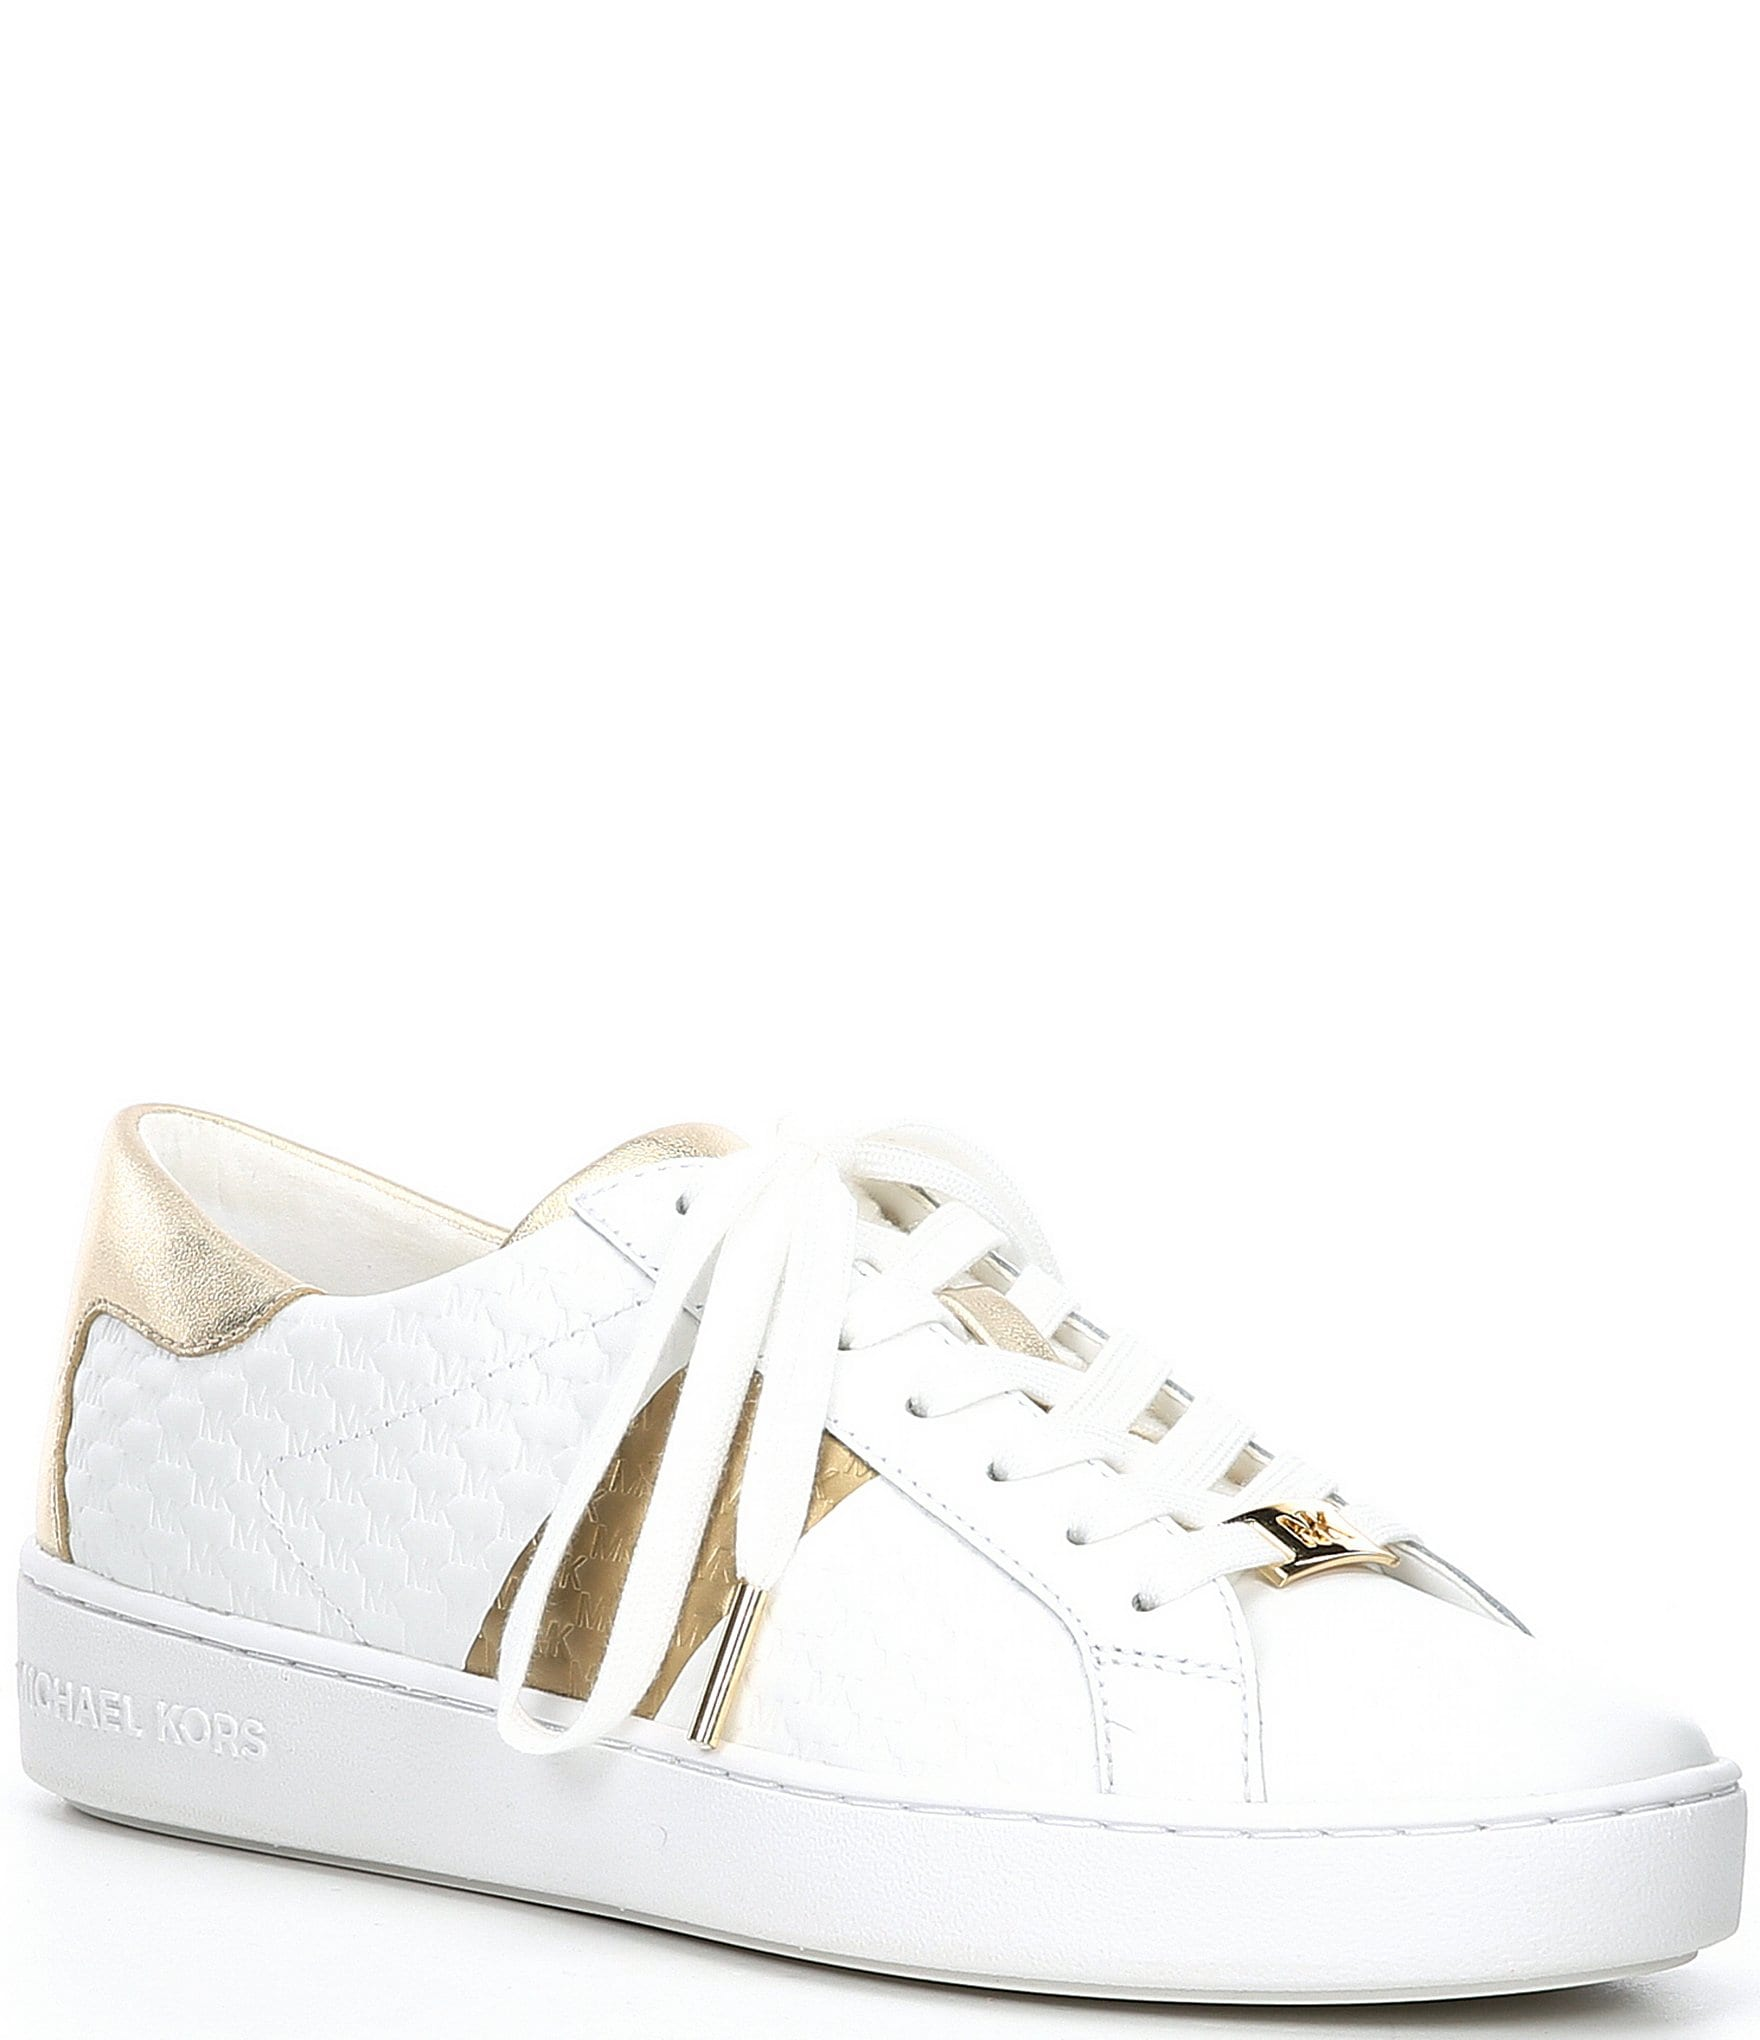 michael kors white leather sneakers